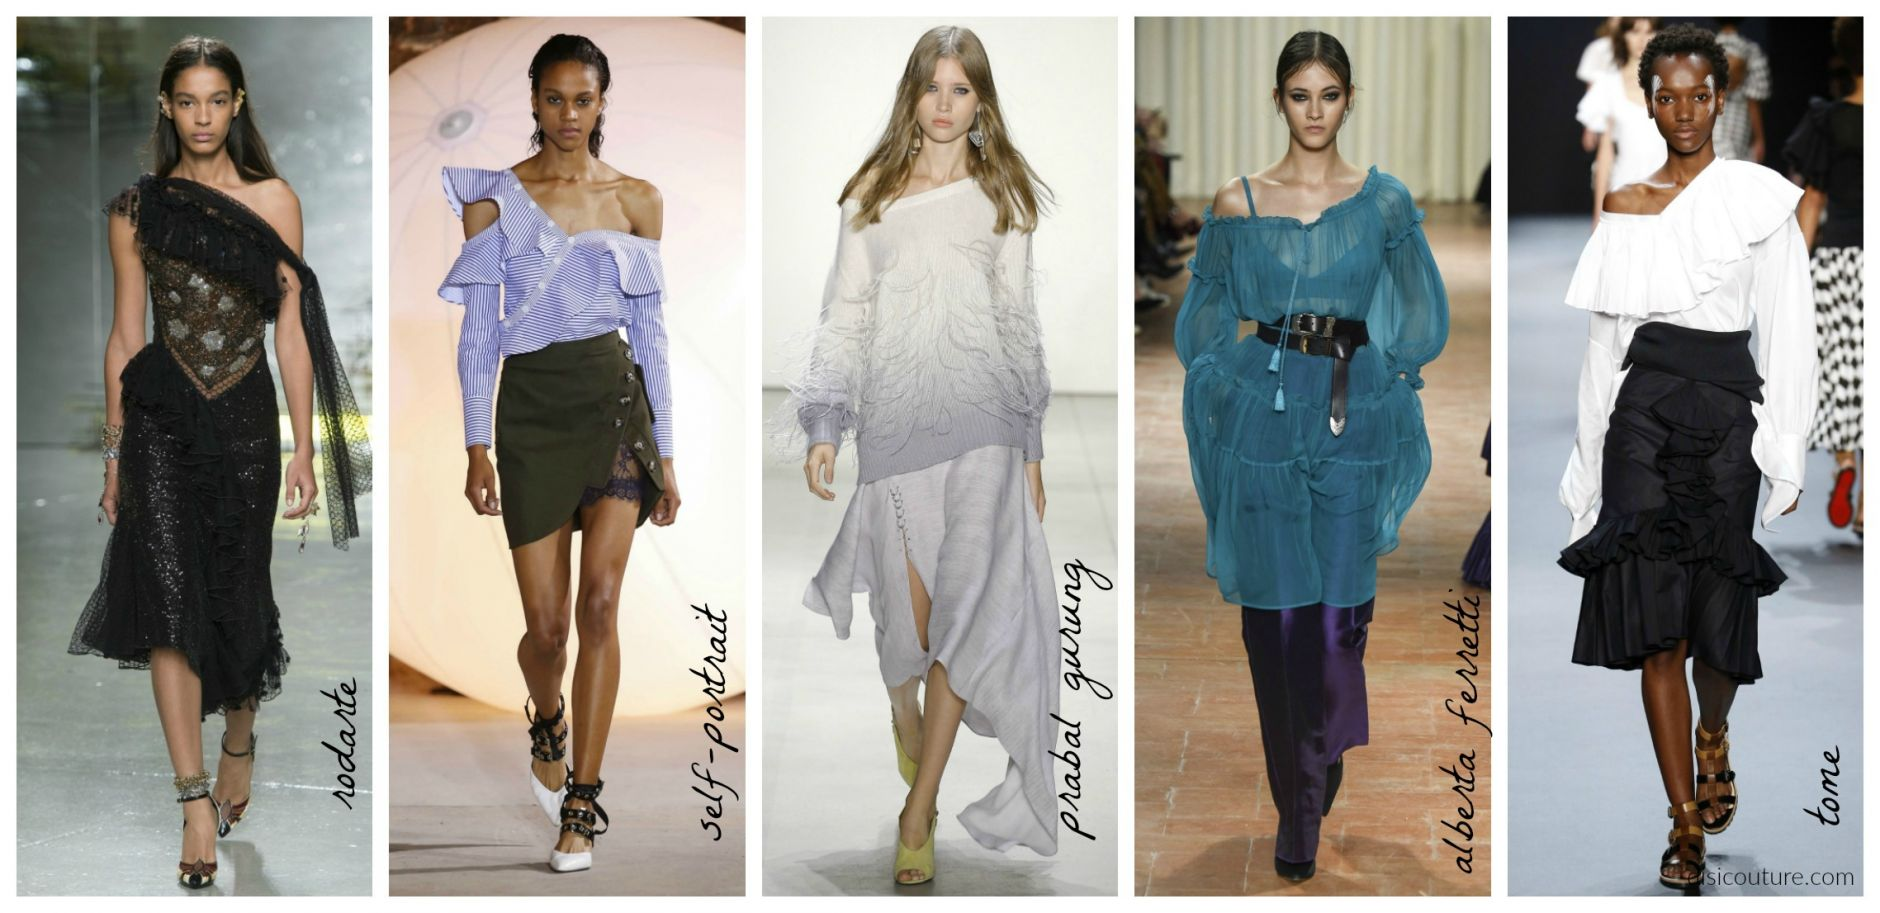 dc fashion 7 trends for spring 2017 disi couture